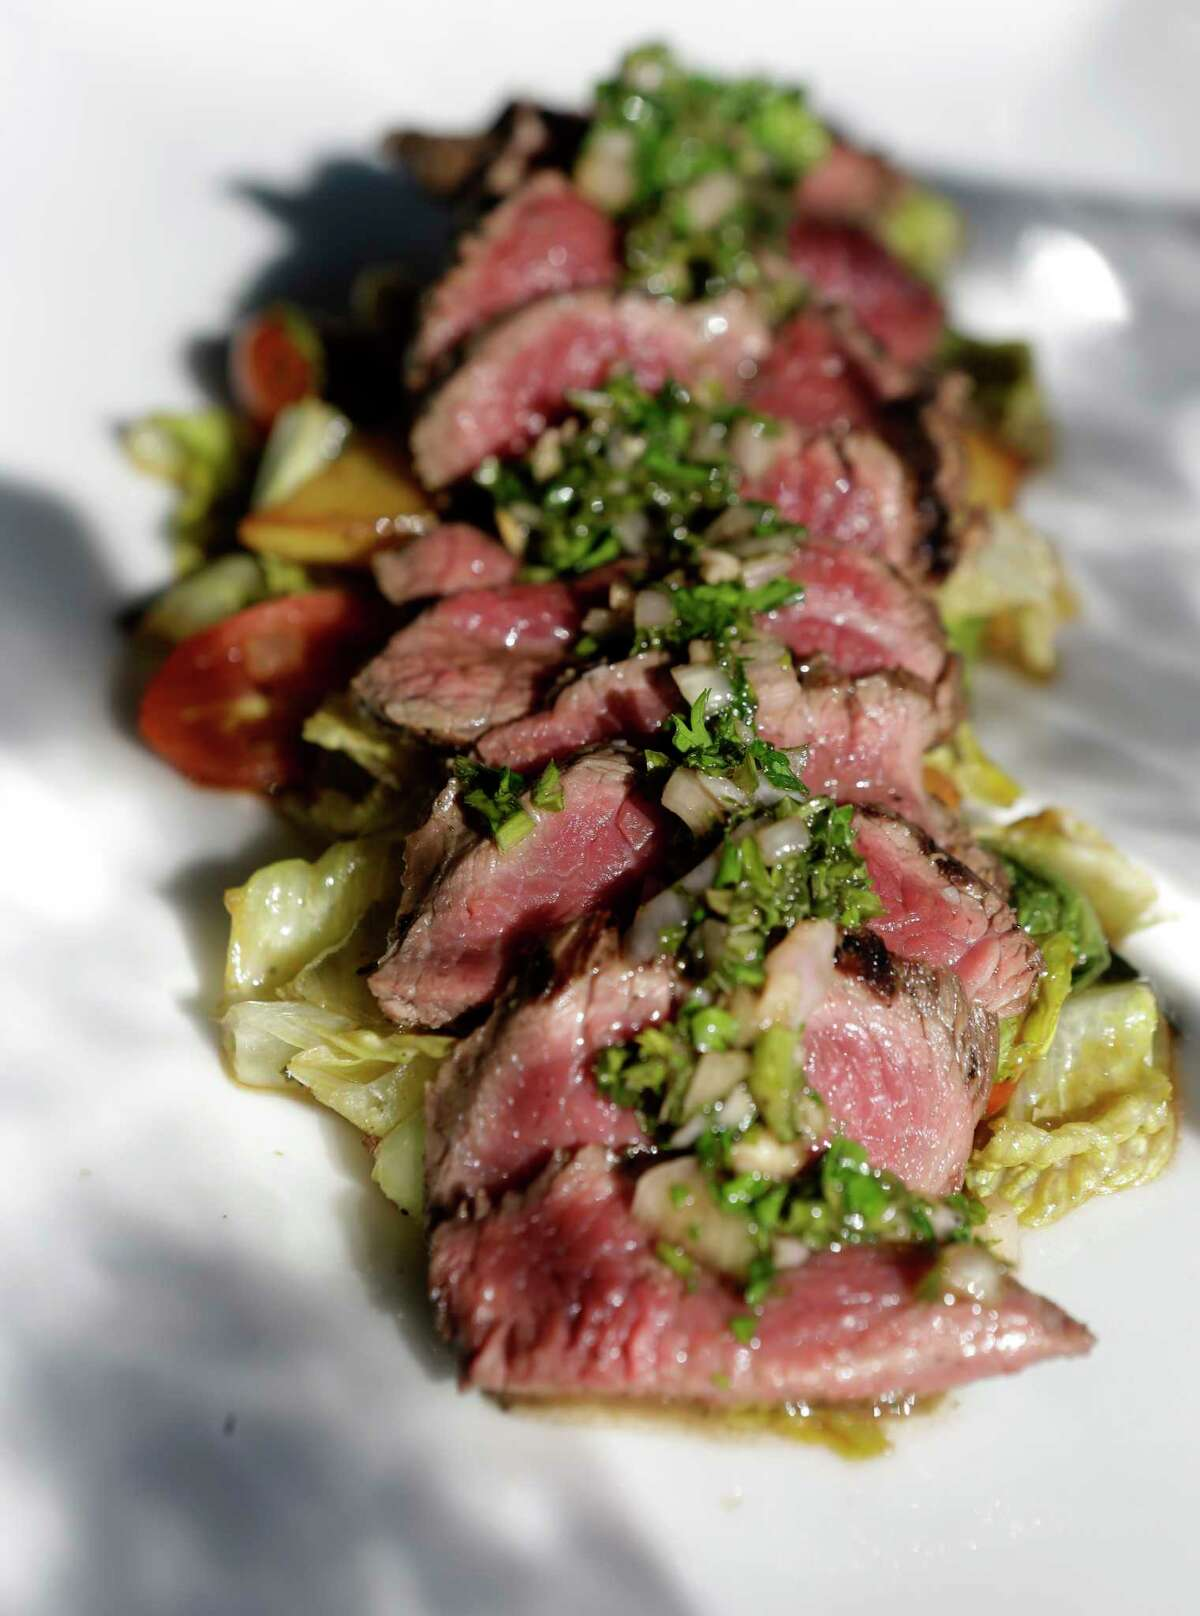 Hanger steak with Yukon Gold potatoes and chimichurri sauce at Avondale Food & Wine in Montrose.